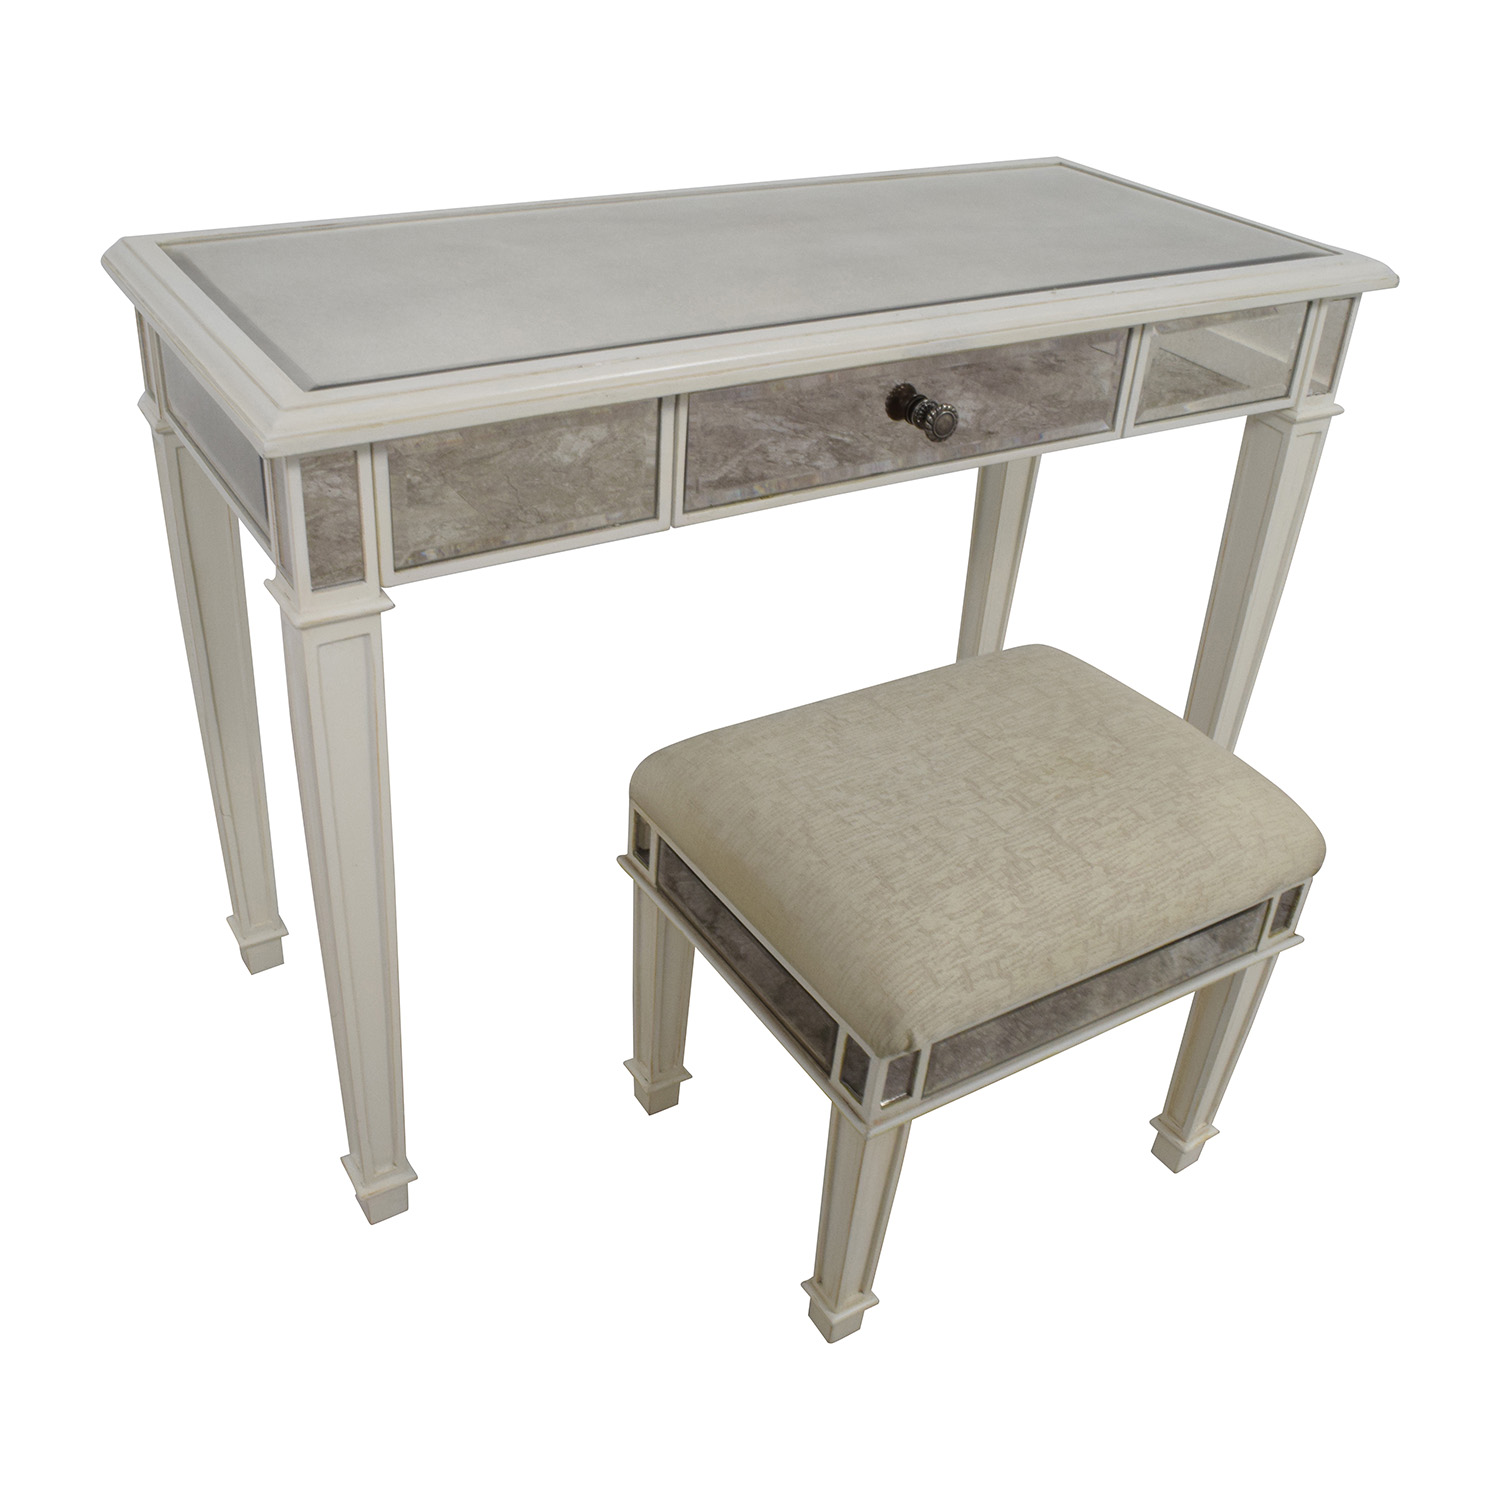 Strange 74 Off Pier 1 Pier 1 Imports Antique White Mirrored Vanity Table And Stool Tables Caraccident5 Cool Chair Designs And Ideas Caraccident5Info